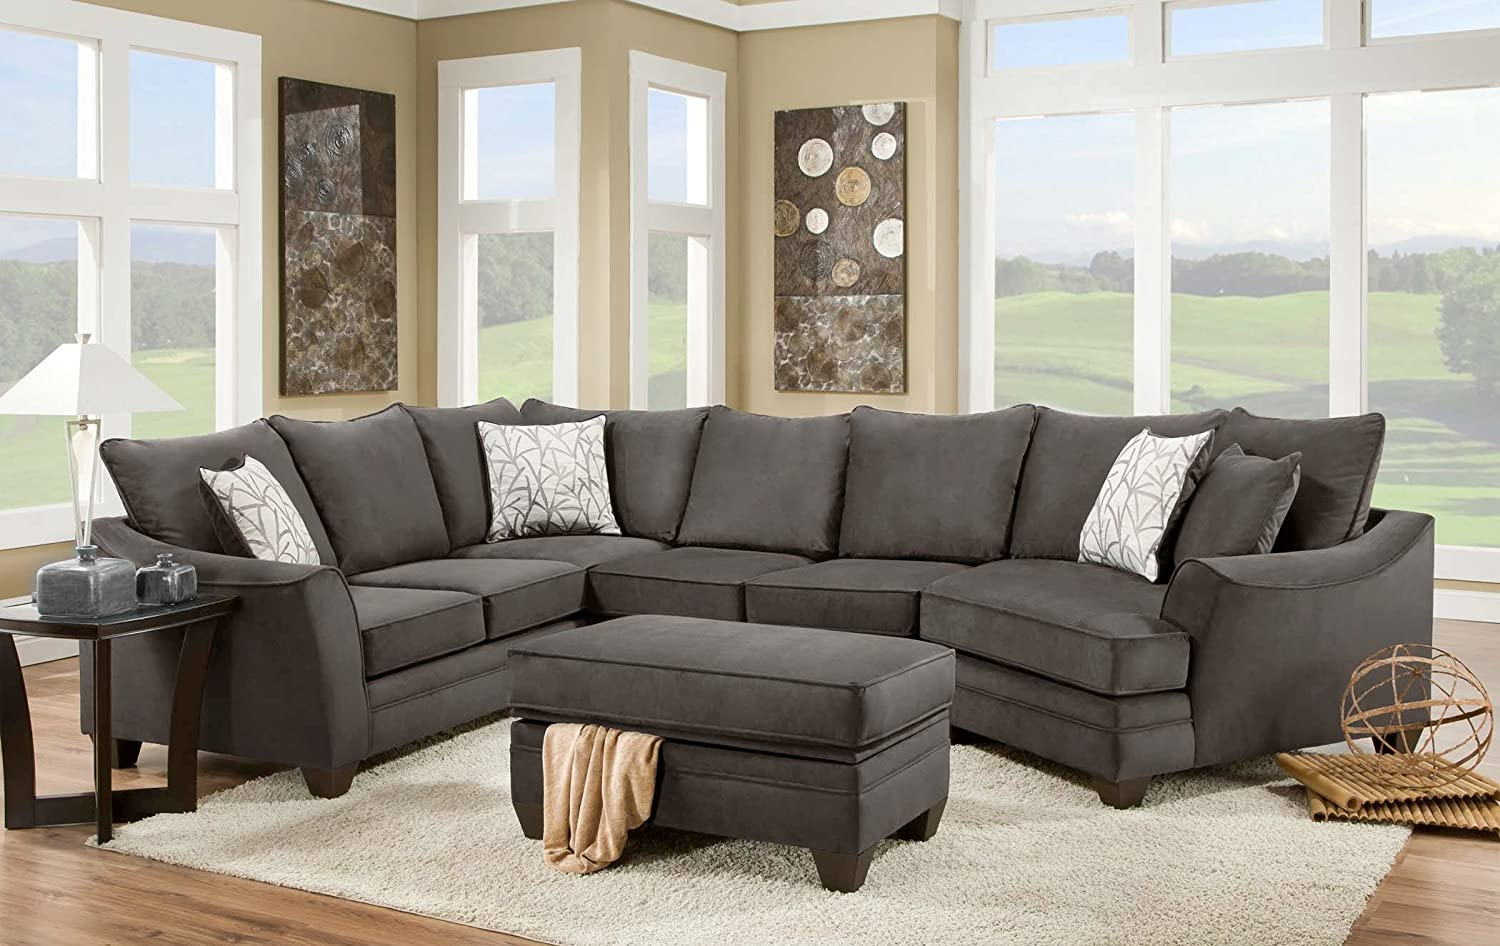 Chelsea Home Furniture Cupertino 3-Piece Sectional, Flannel Seal